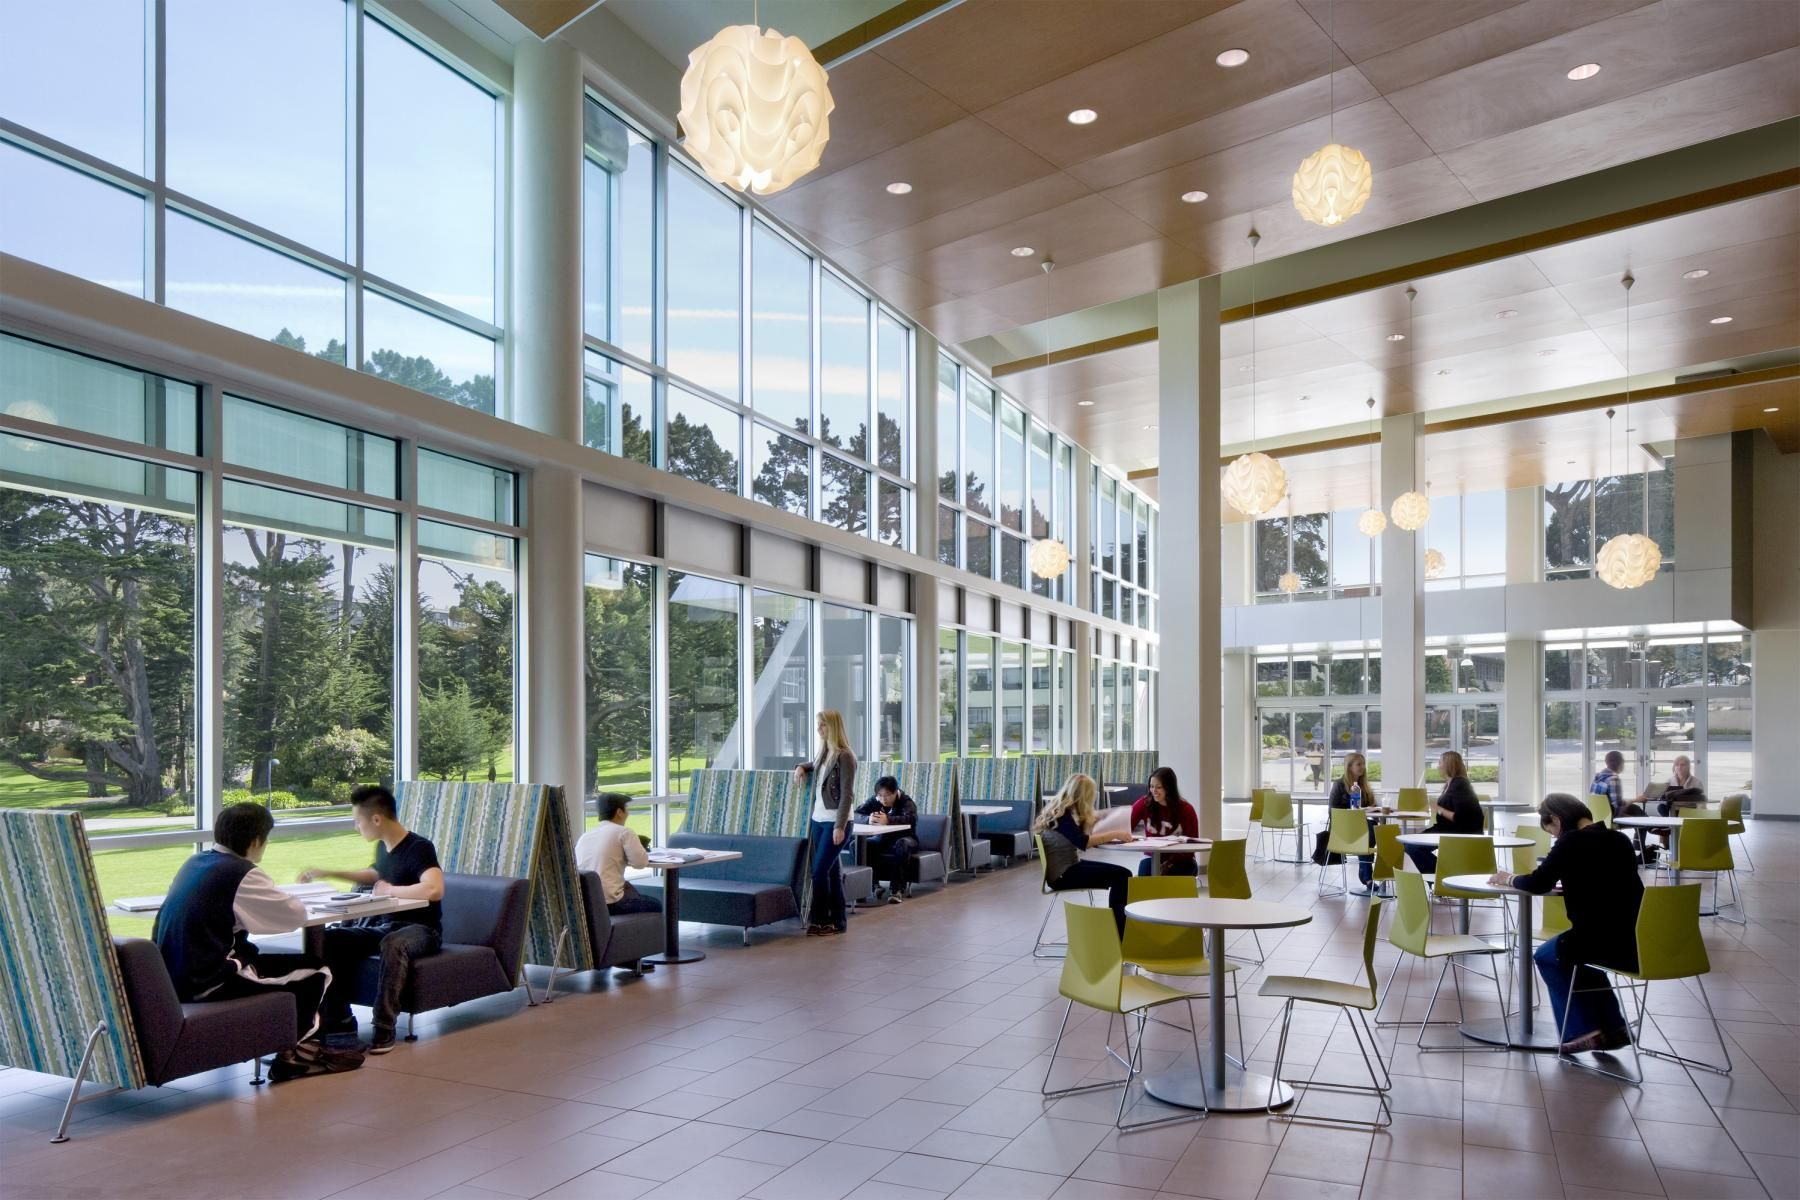 Pin By Dina Chen On Library Research San Francisco State University University Campus State University